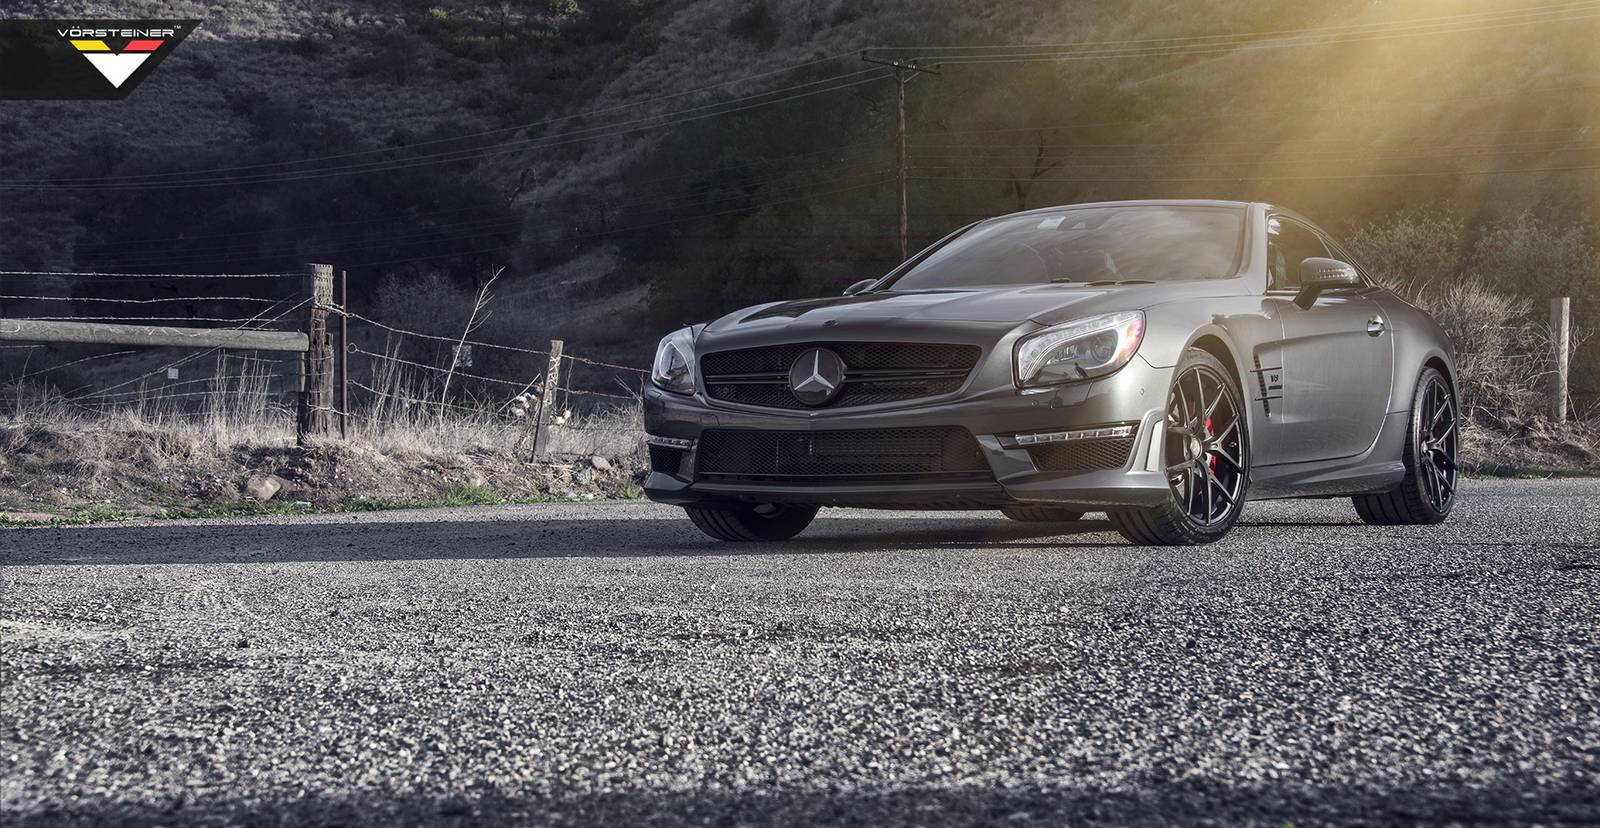 114 Vorsteiner Wheels Enhances 2014 Mercedes Benz SL63 AMG